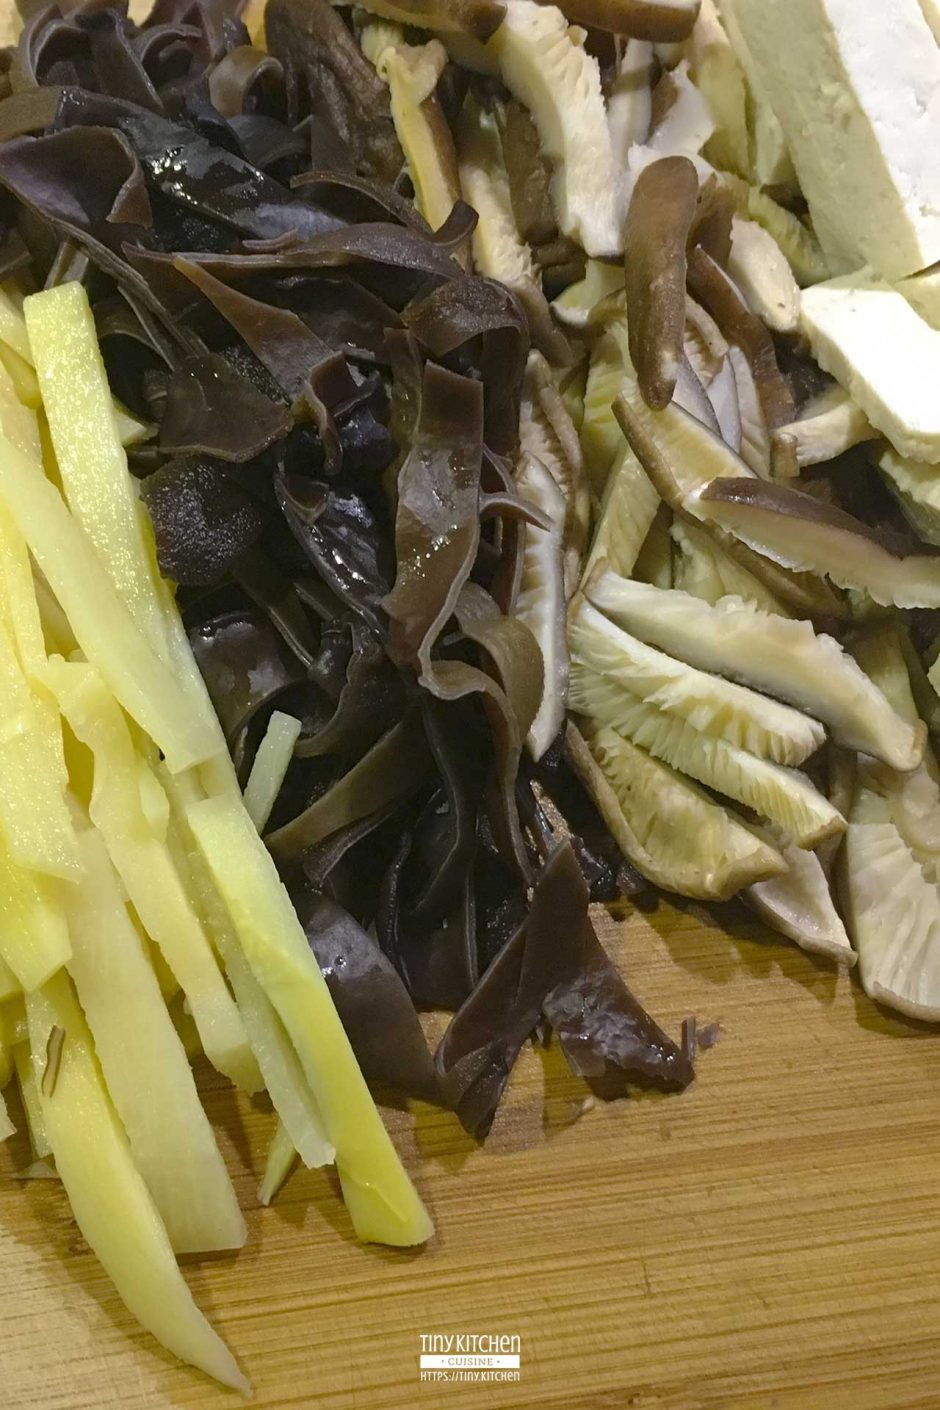 Bamboo shoots, wood ear mushrooms, shiitake mushrooms, and tofu sliced and prepared for Hot and Sour Soup.